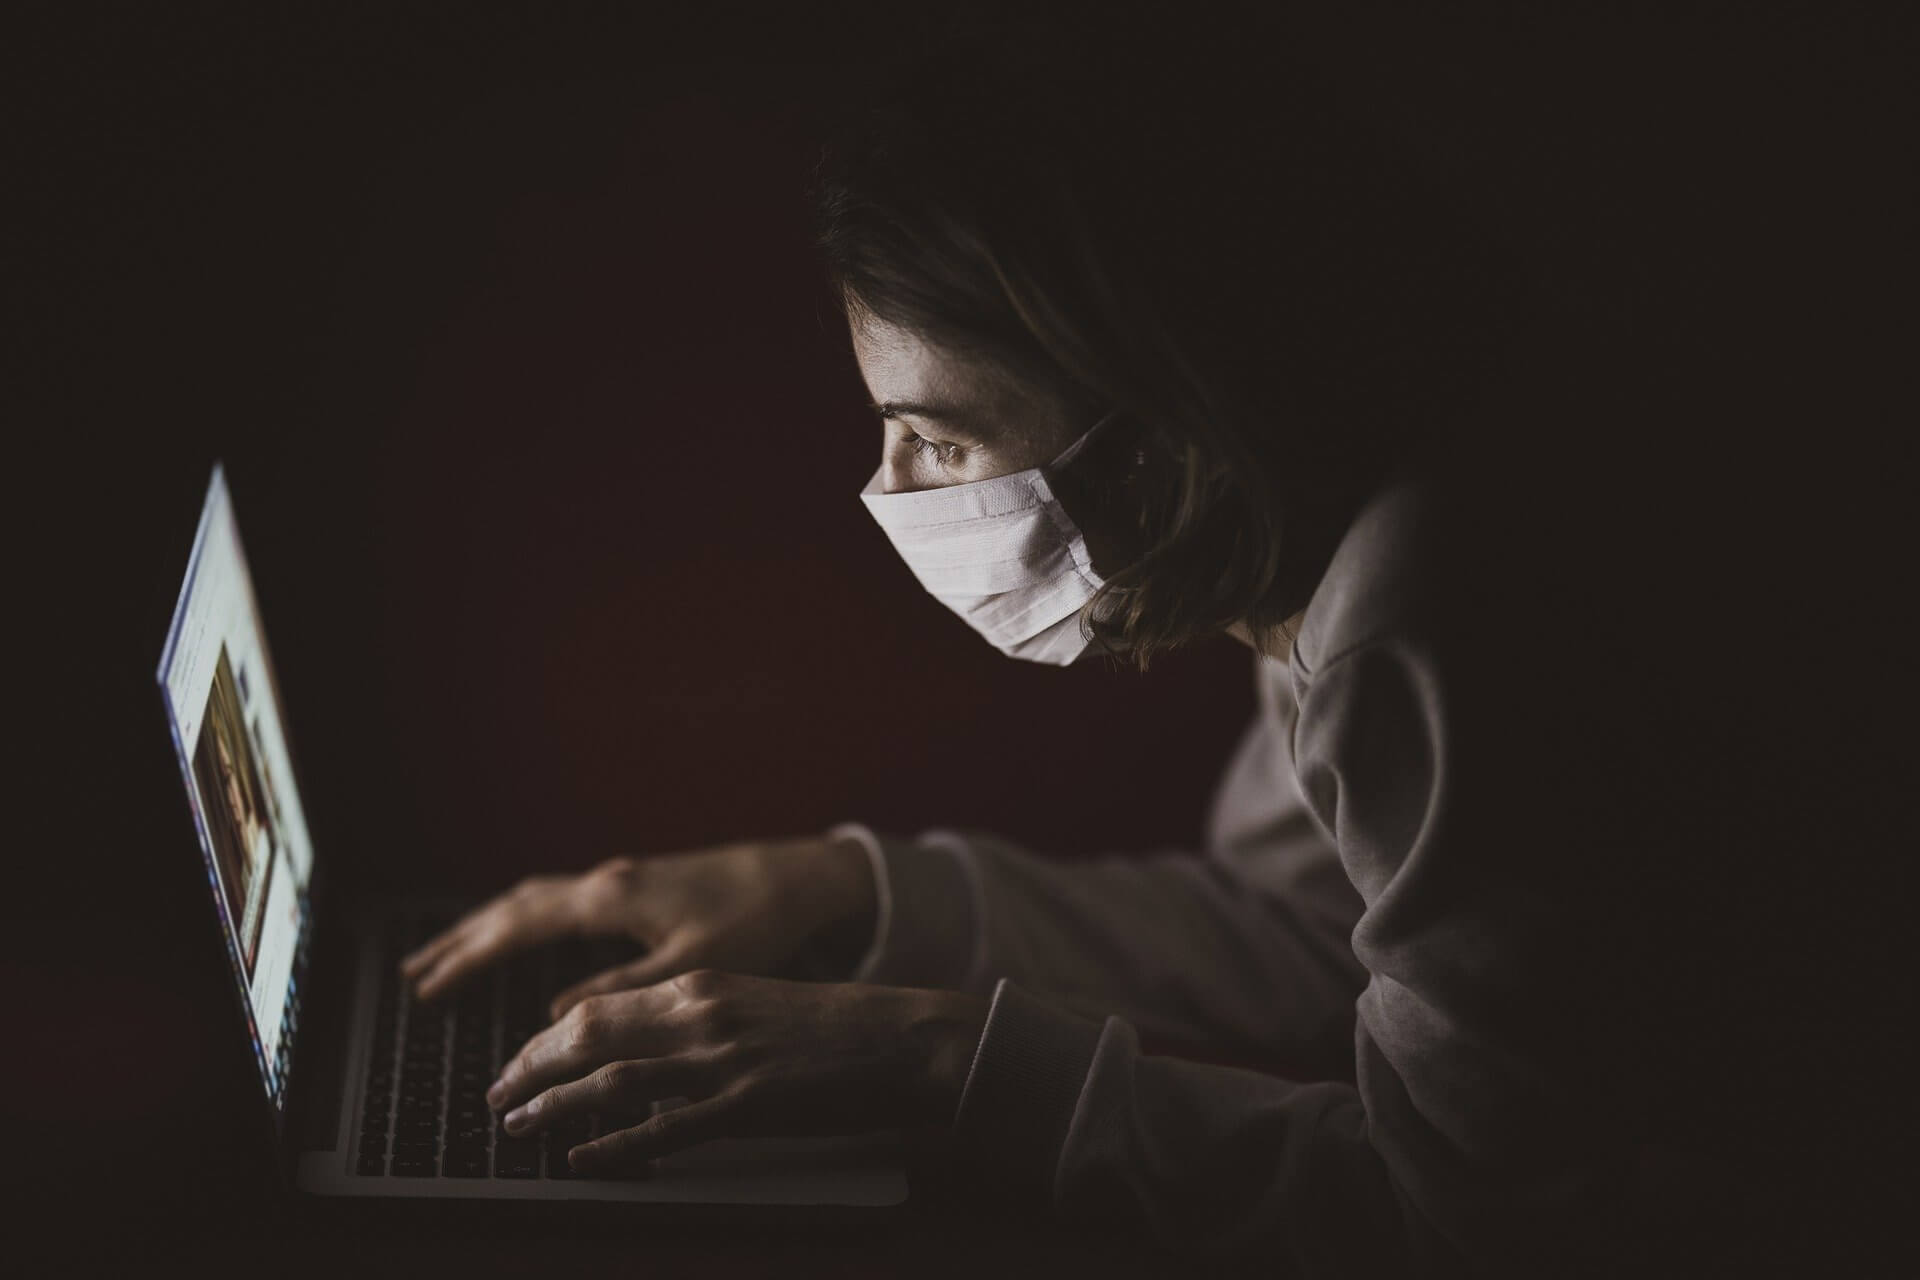 person typing on a laptop while sitting in the dark wearing a surgical mask like those worn during COVID-19 pandemic